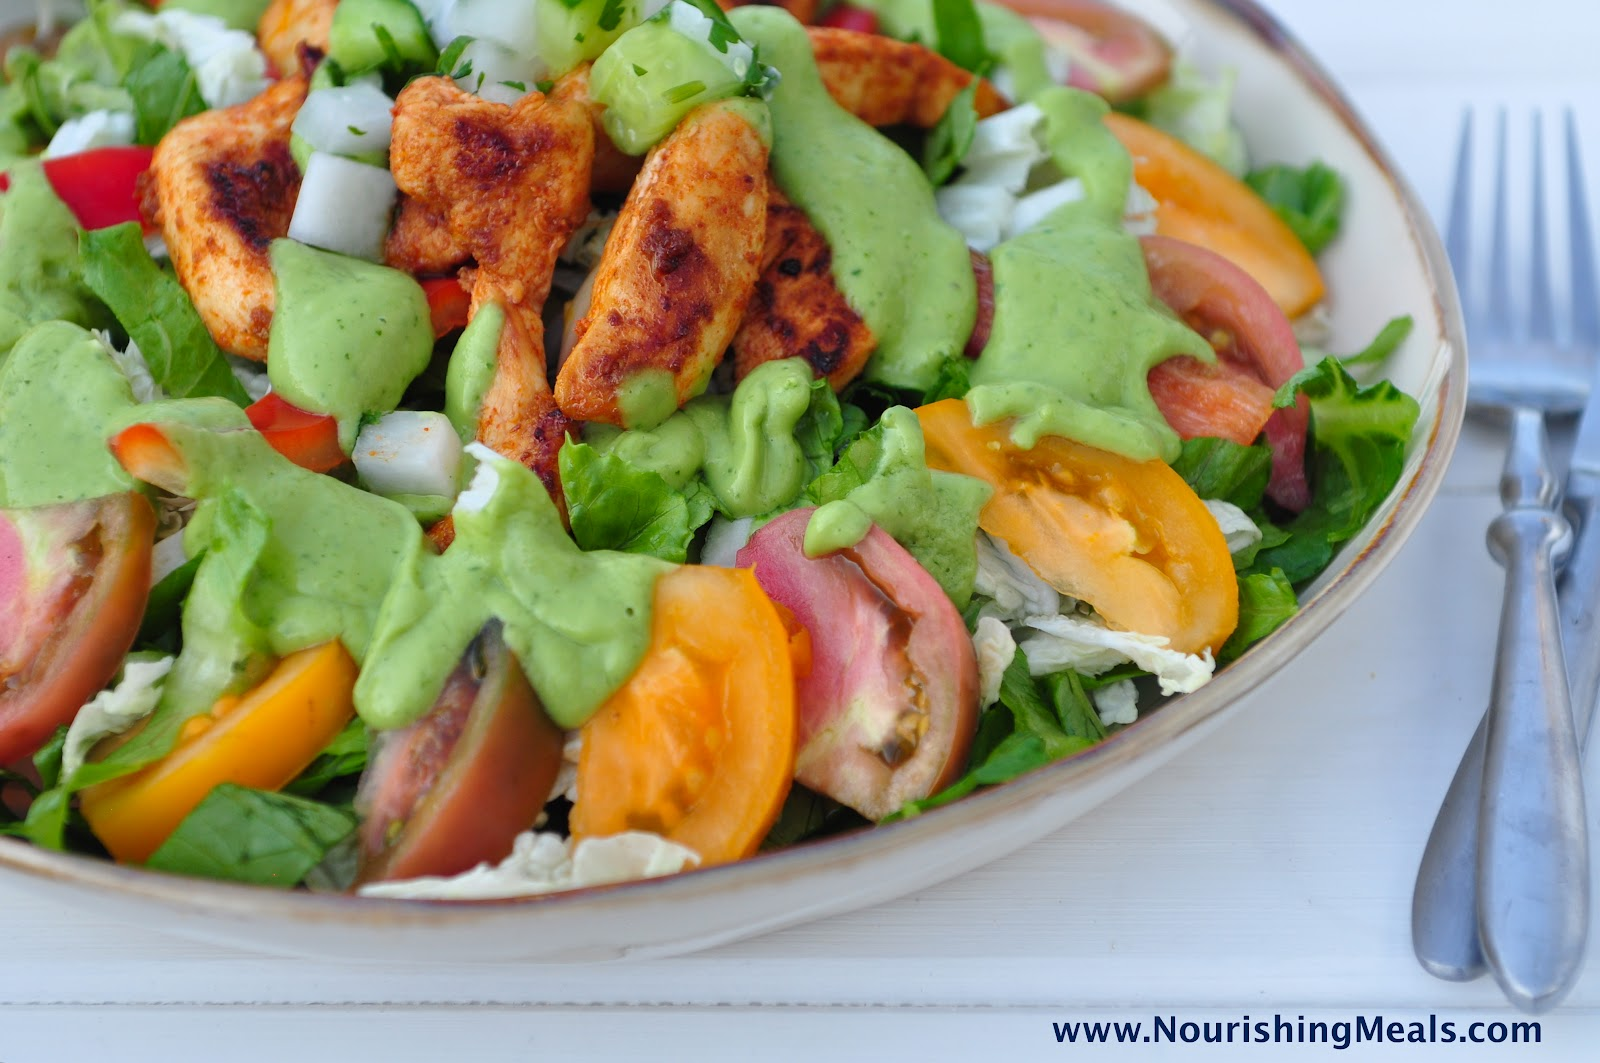 Nourishing Meals: Chicken Fajita Salad with Spicy Avocado Dressing